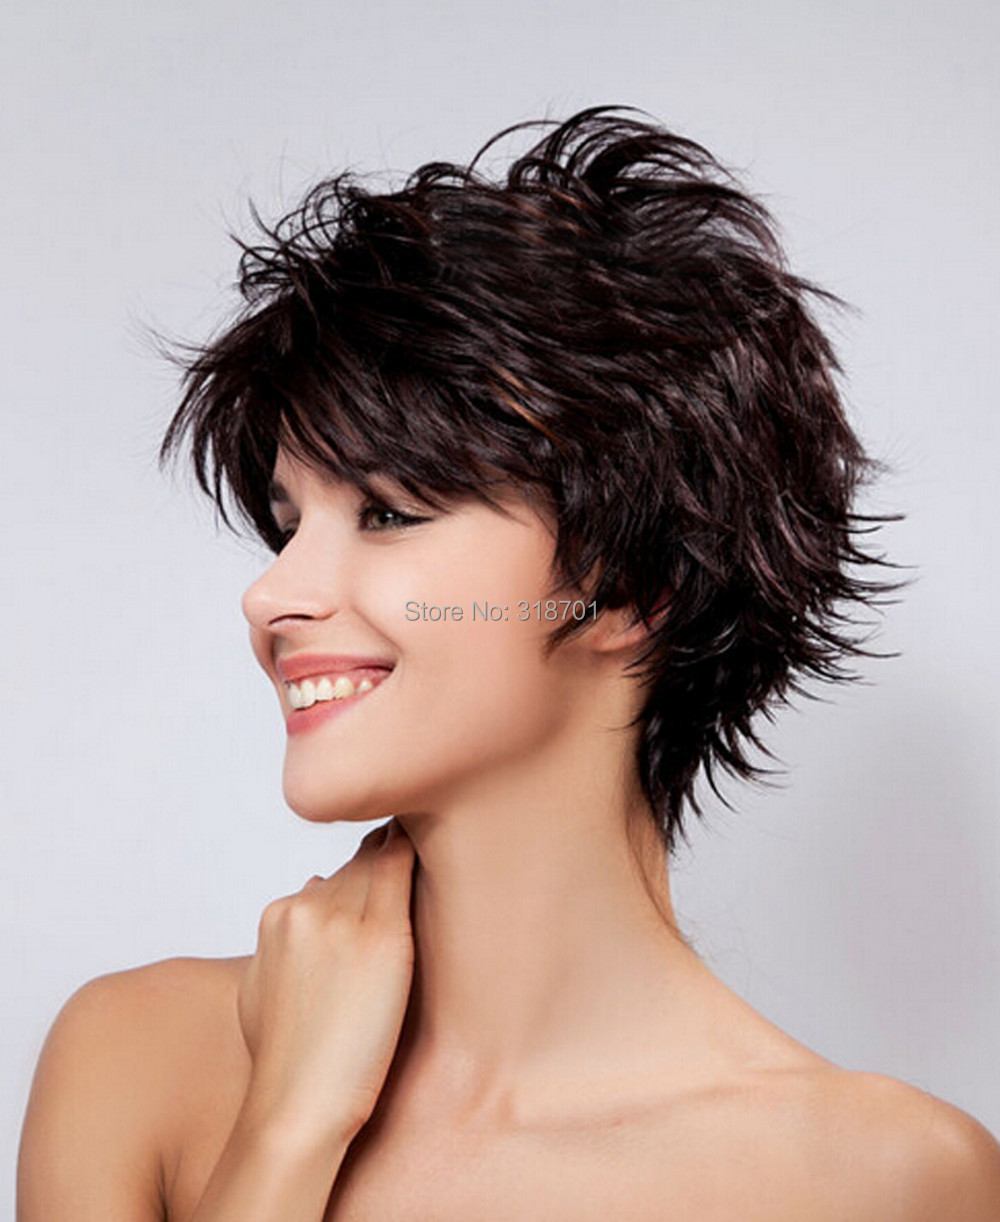 Short Hair wigs Natural dark brown with Highlights ...